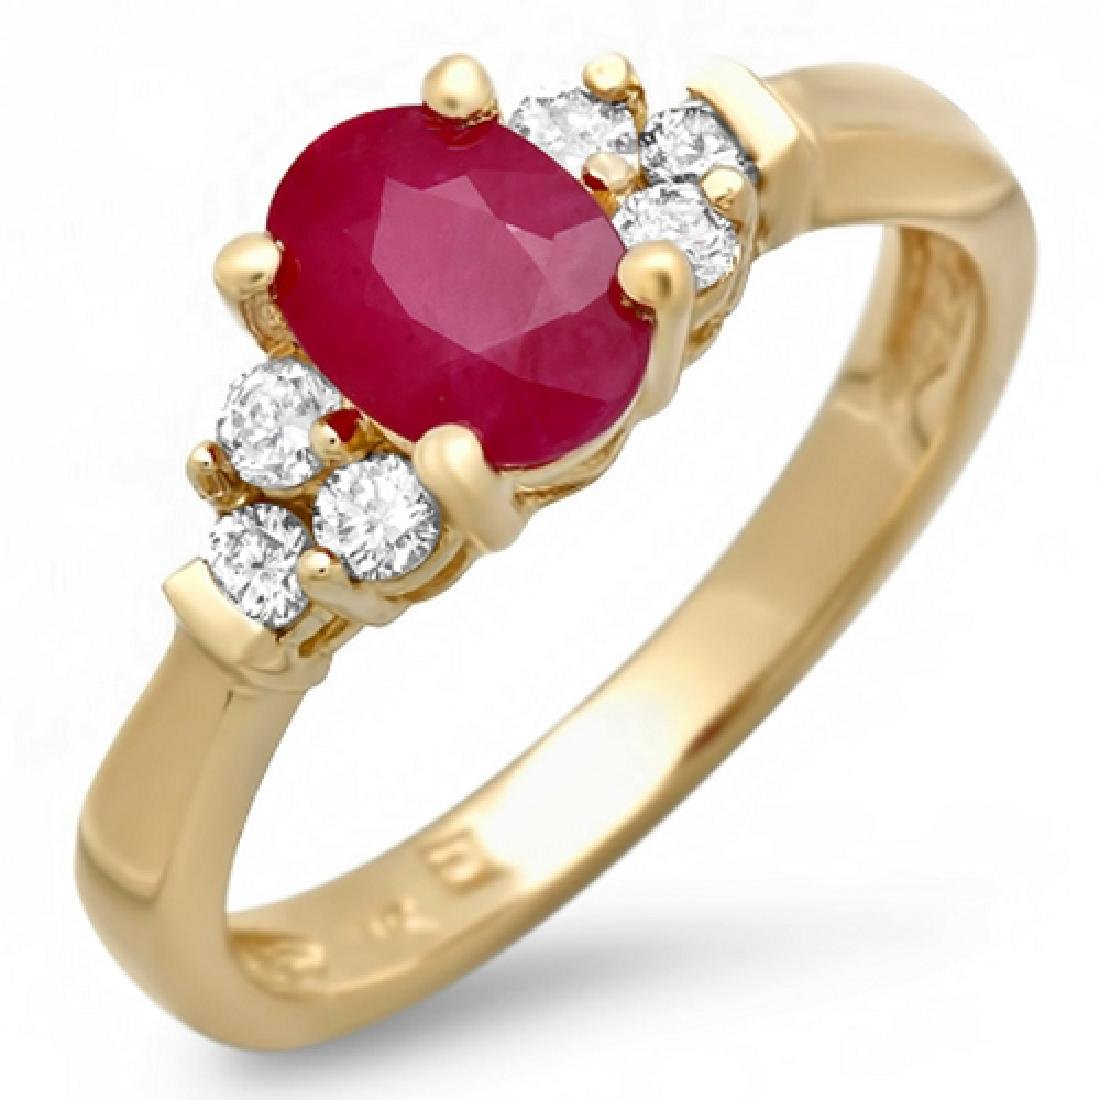 1.22 Carat Natural Ruby 18K Solid Yellow Gold Diamond